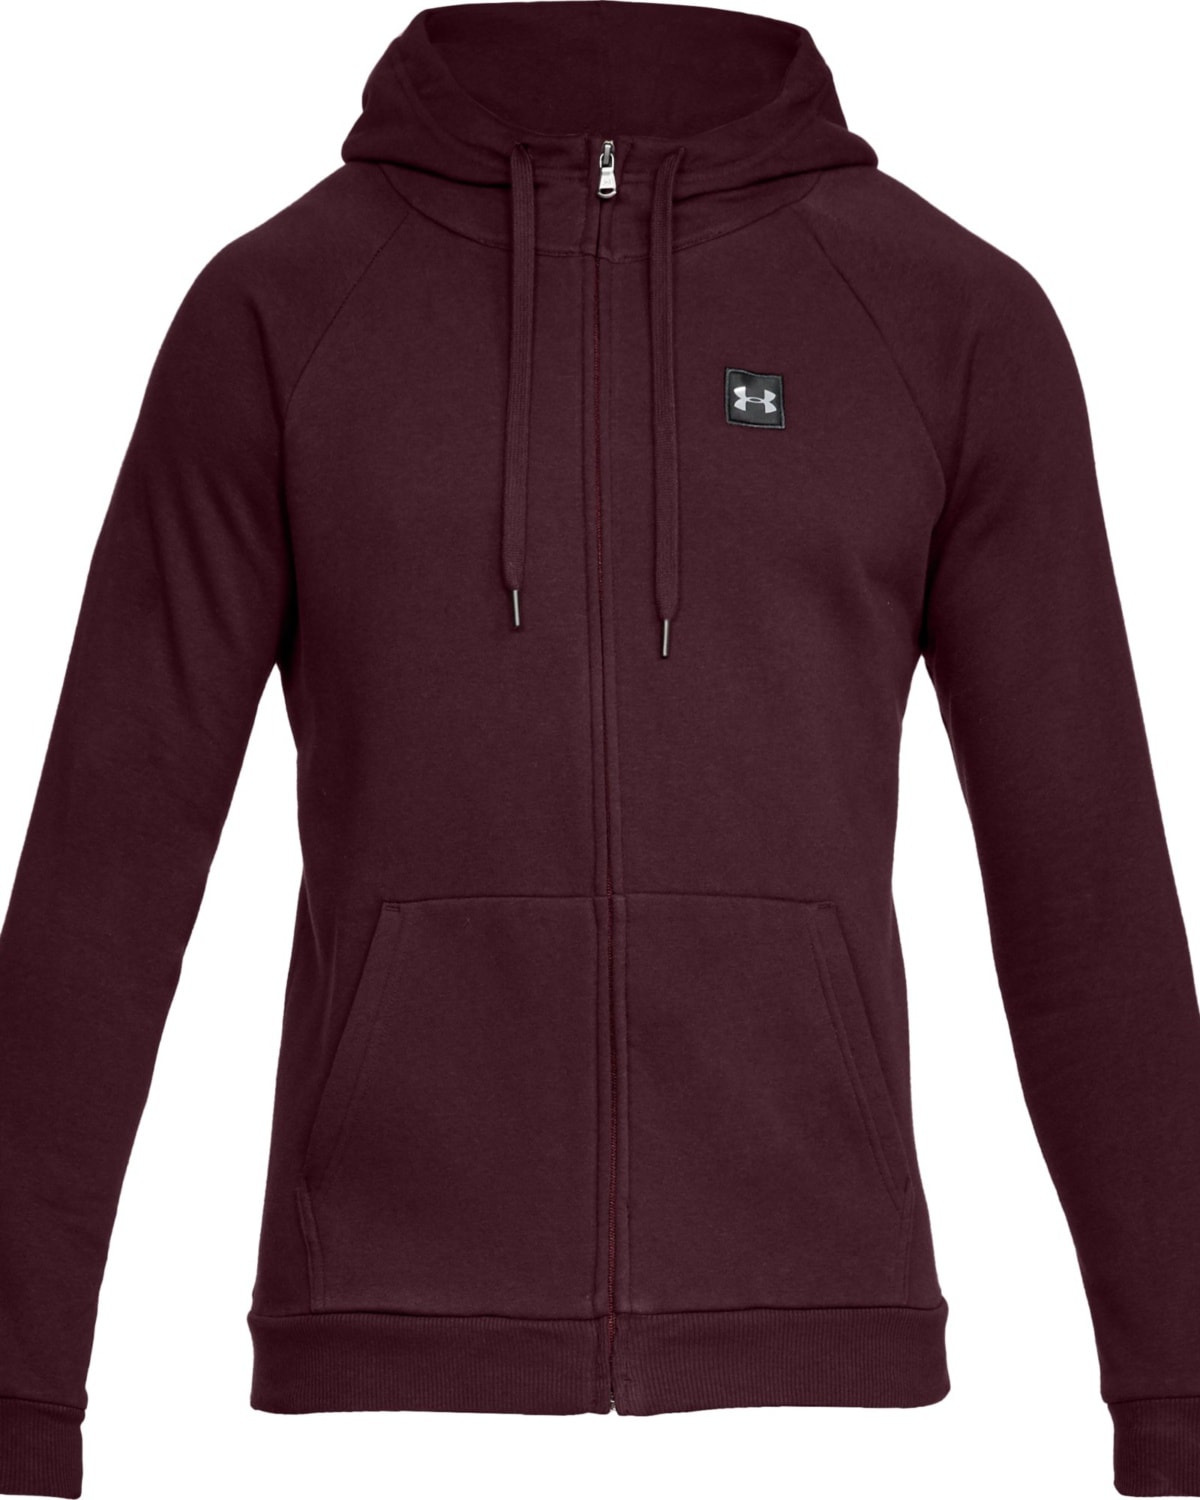 Under Armour Rival Fleece Hoody 1320737-600_HF